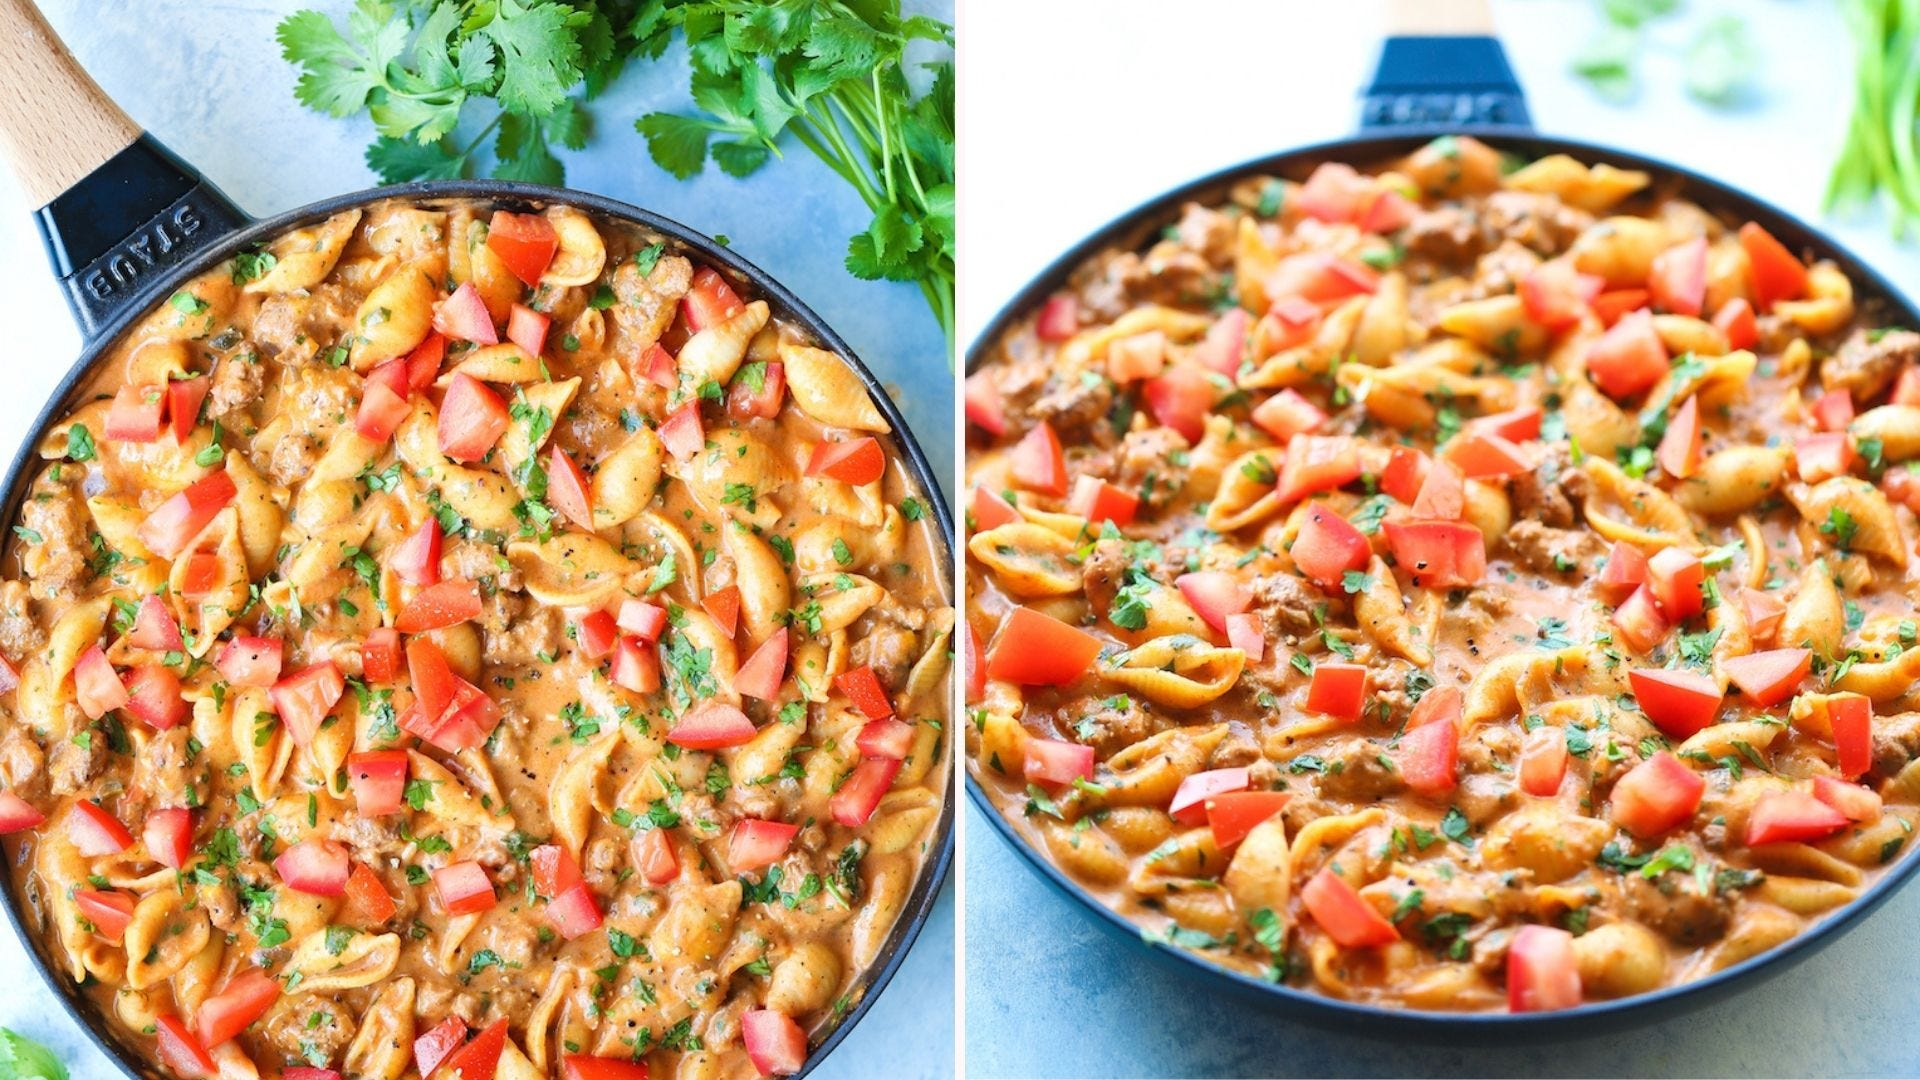 Two images of creamy taco shells pasta, in a staub skillet, with parsley on the side.